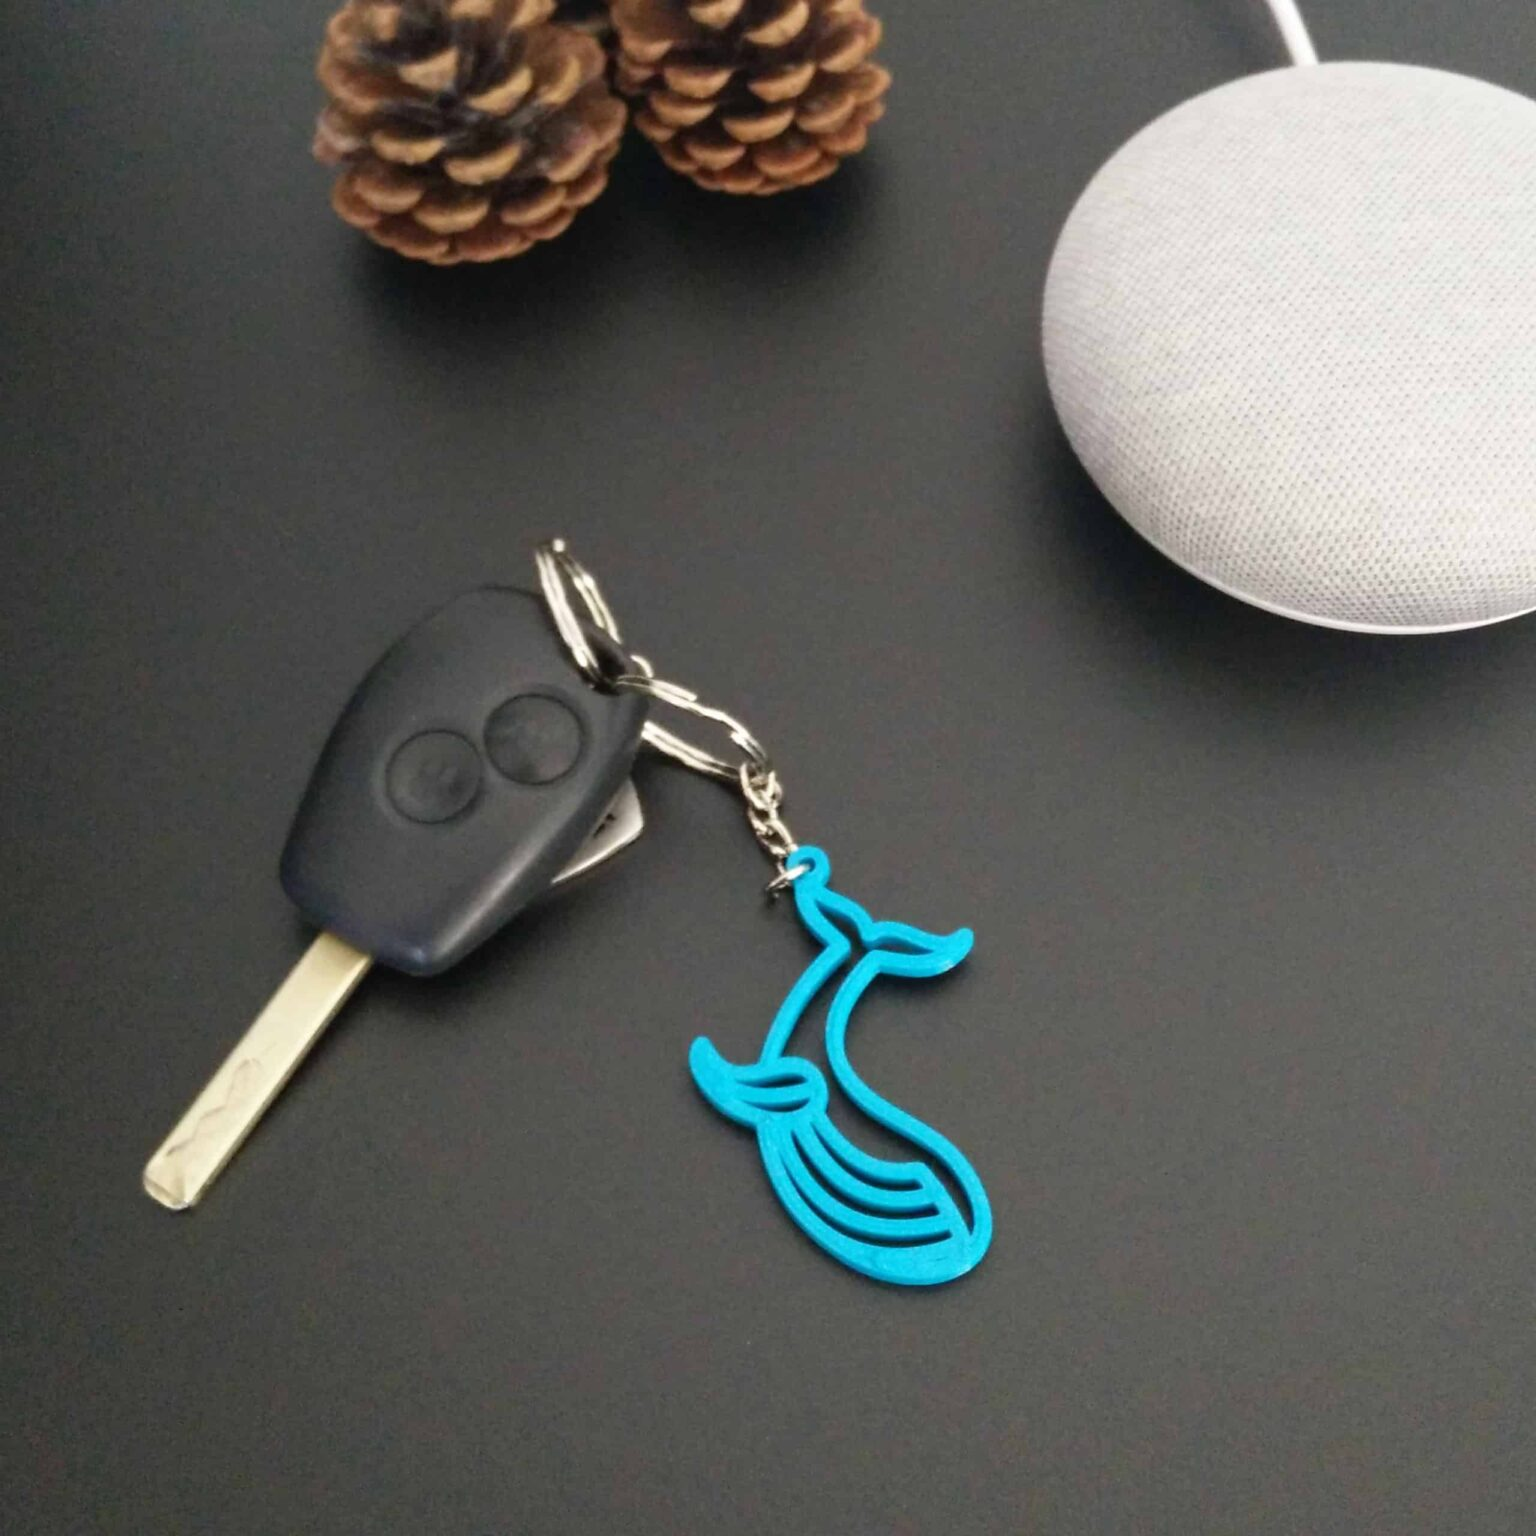 Blue Whale keychain - 3D printed